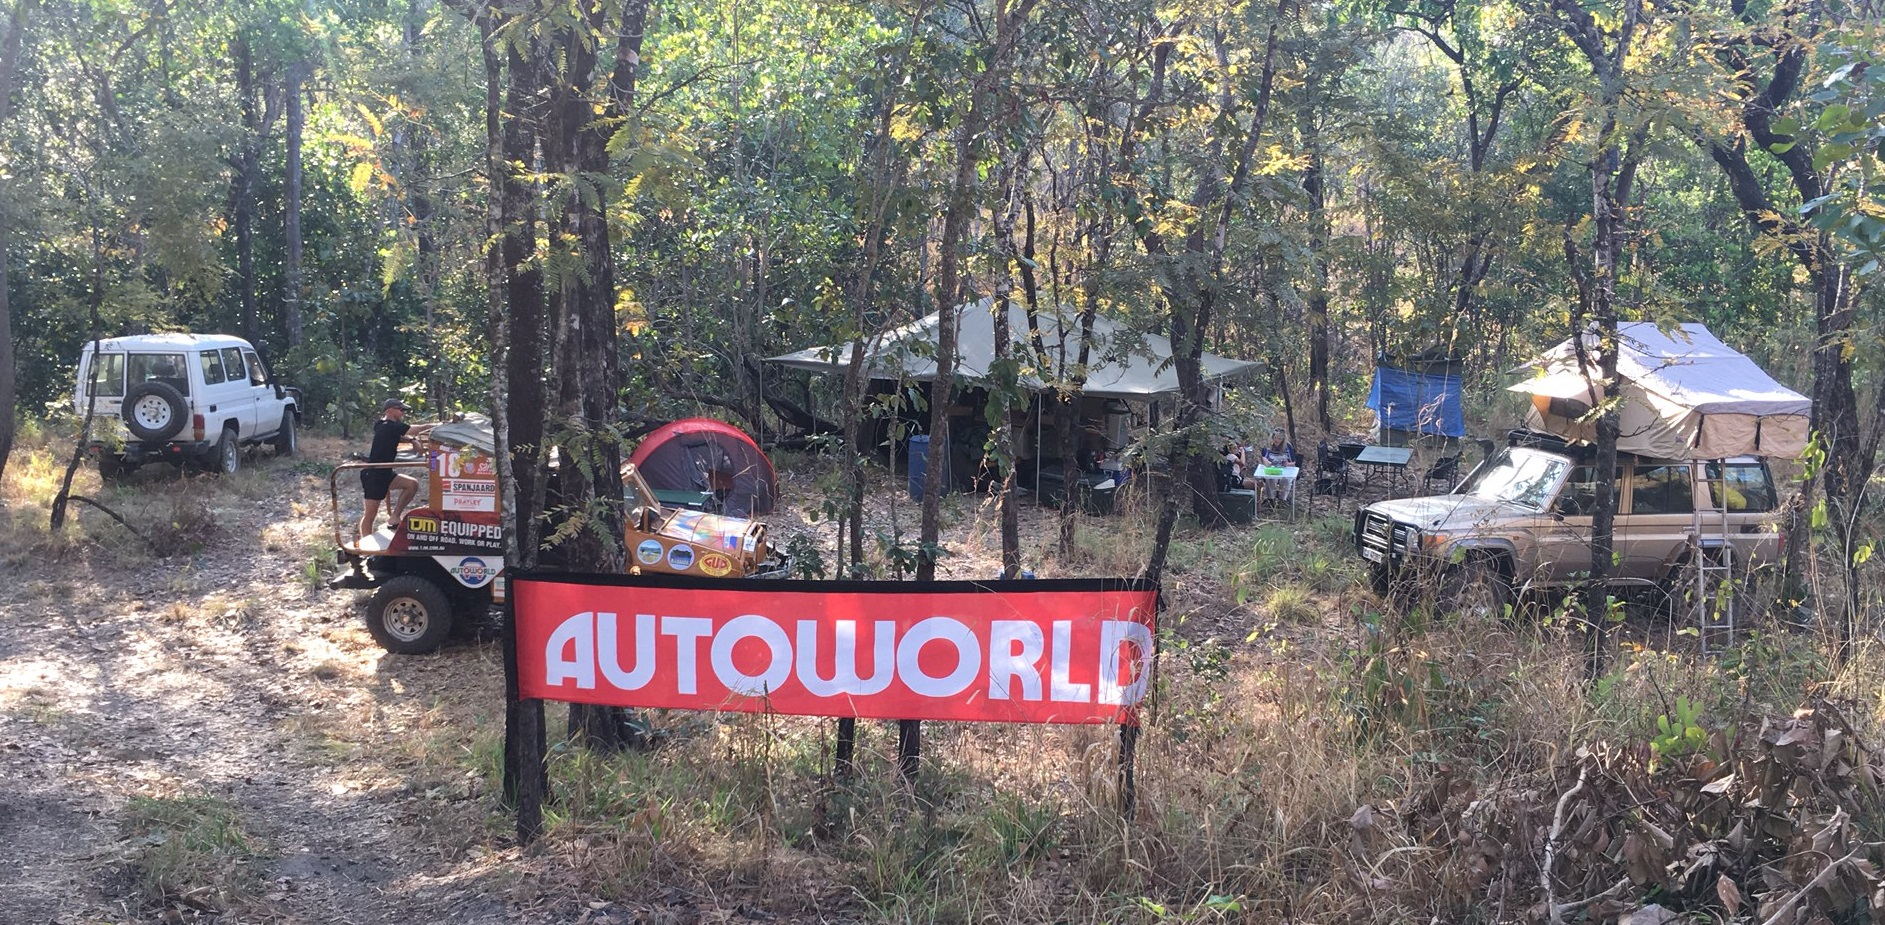 Camp Autoworld at the 2017 Elephant Charge